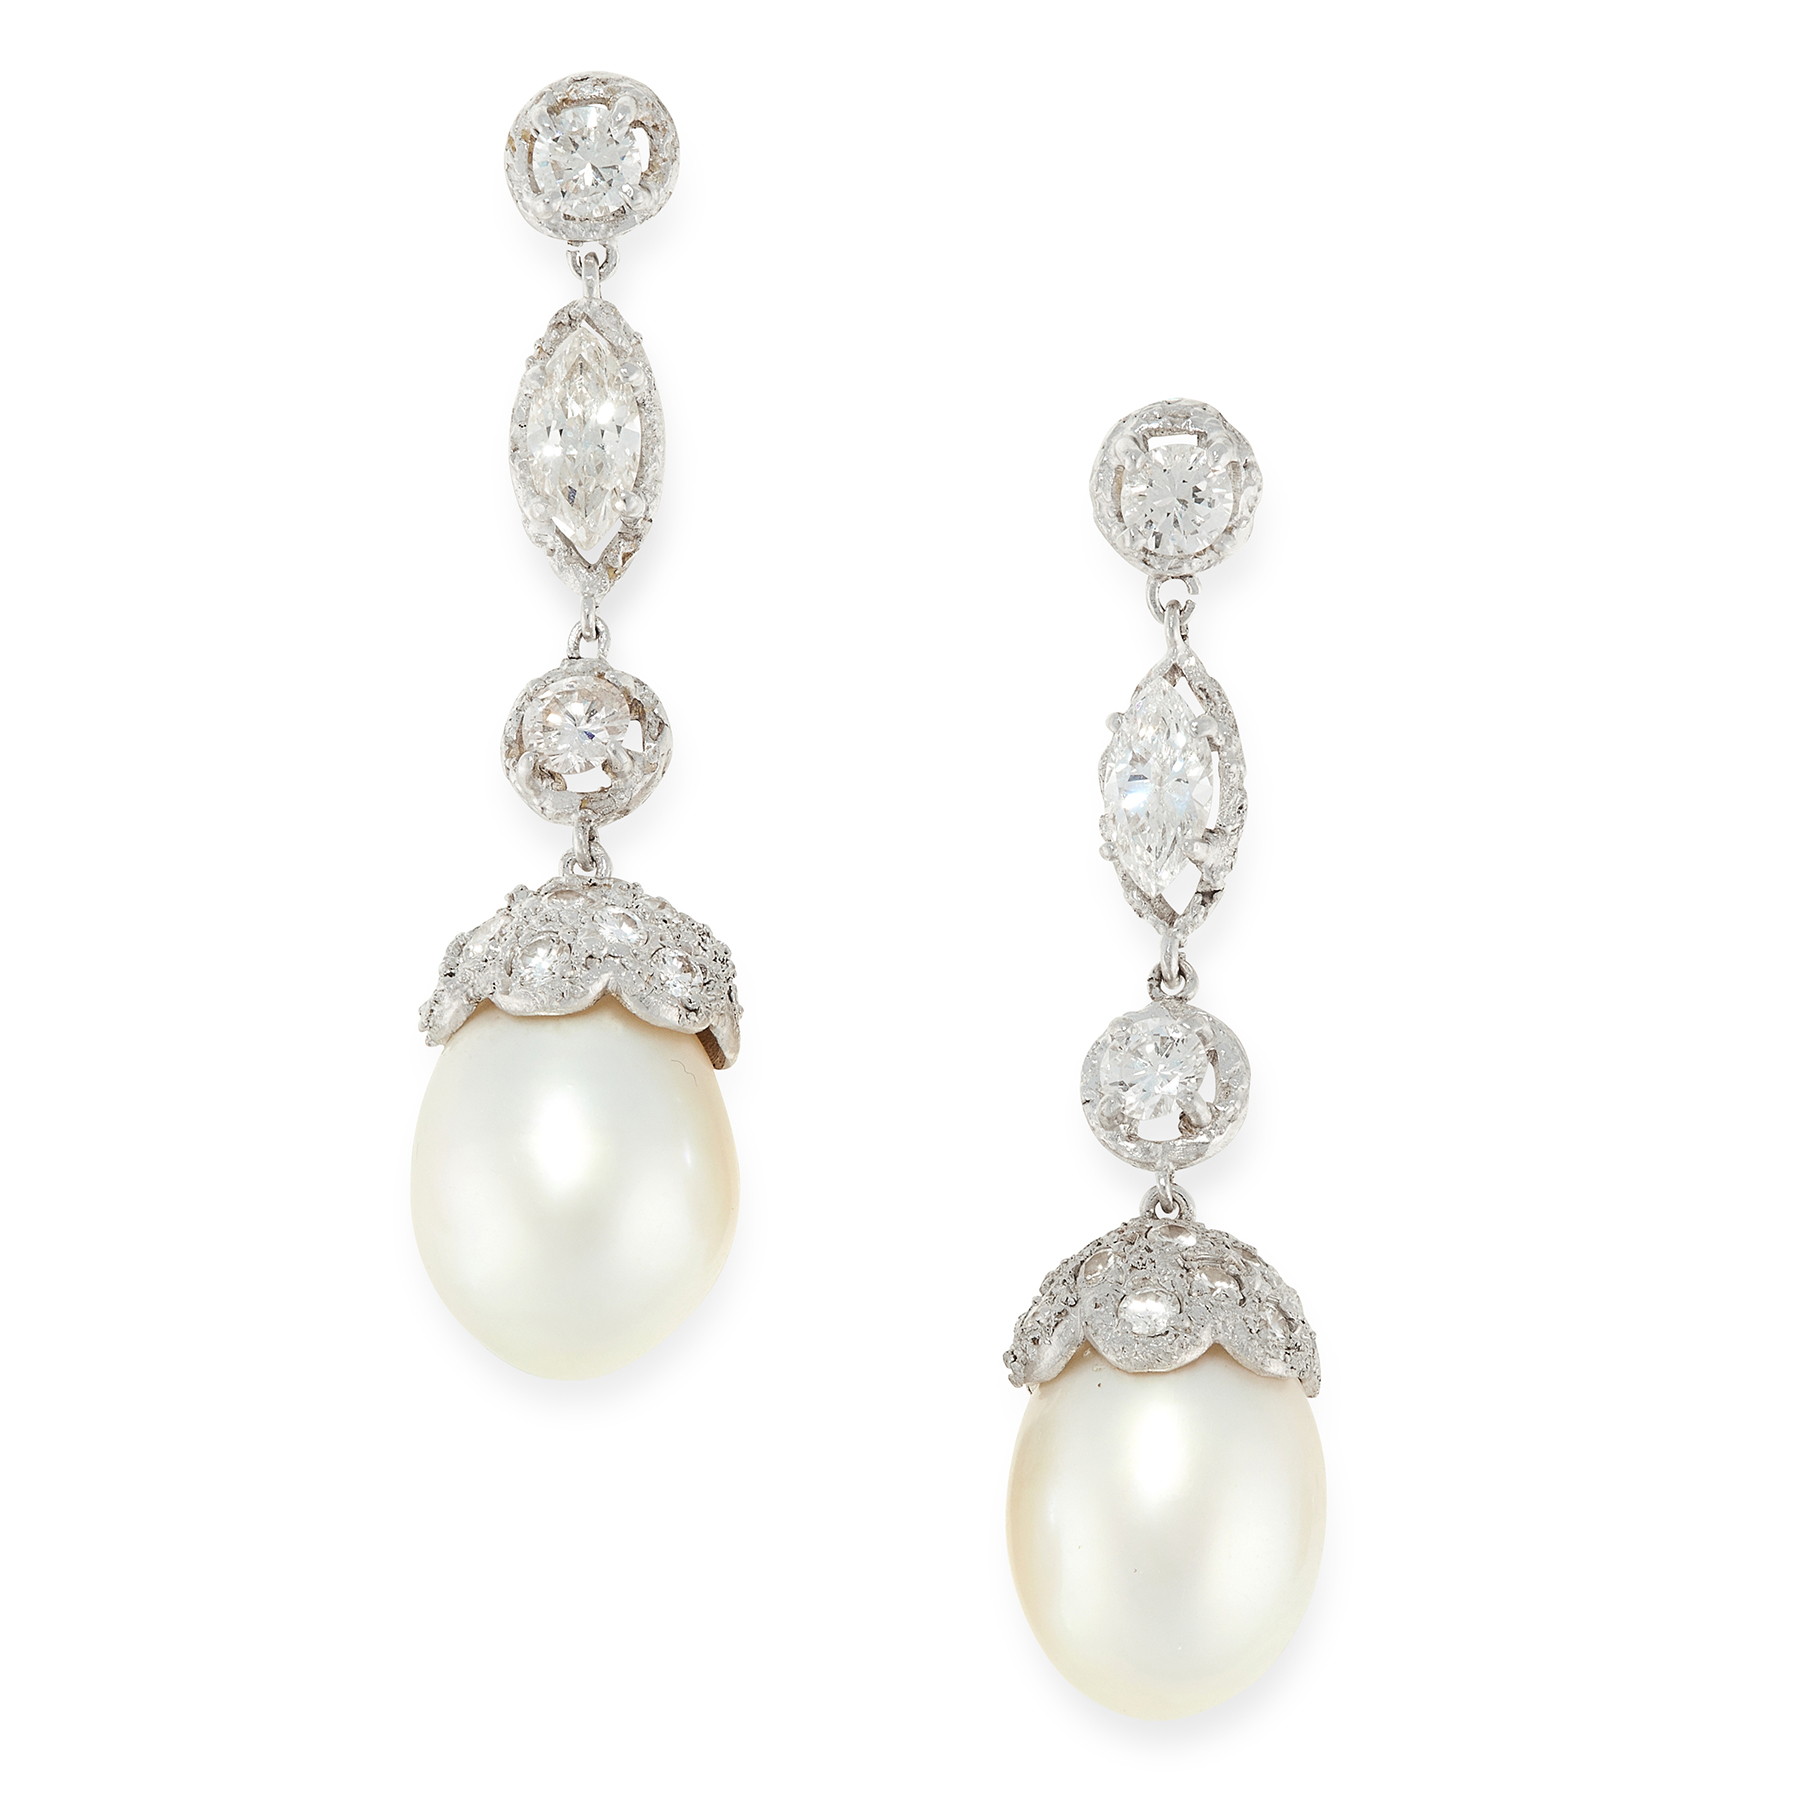 A PAIR OF PEARL AND DIAMOND DROP EARRINGS in high carat gold, each set with a drop shaped pearl - Image 2 of 2